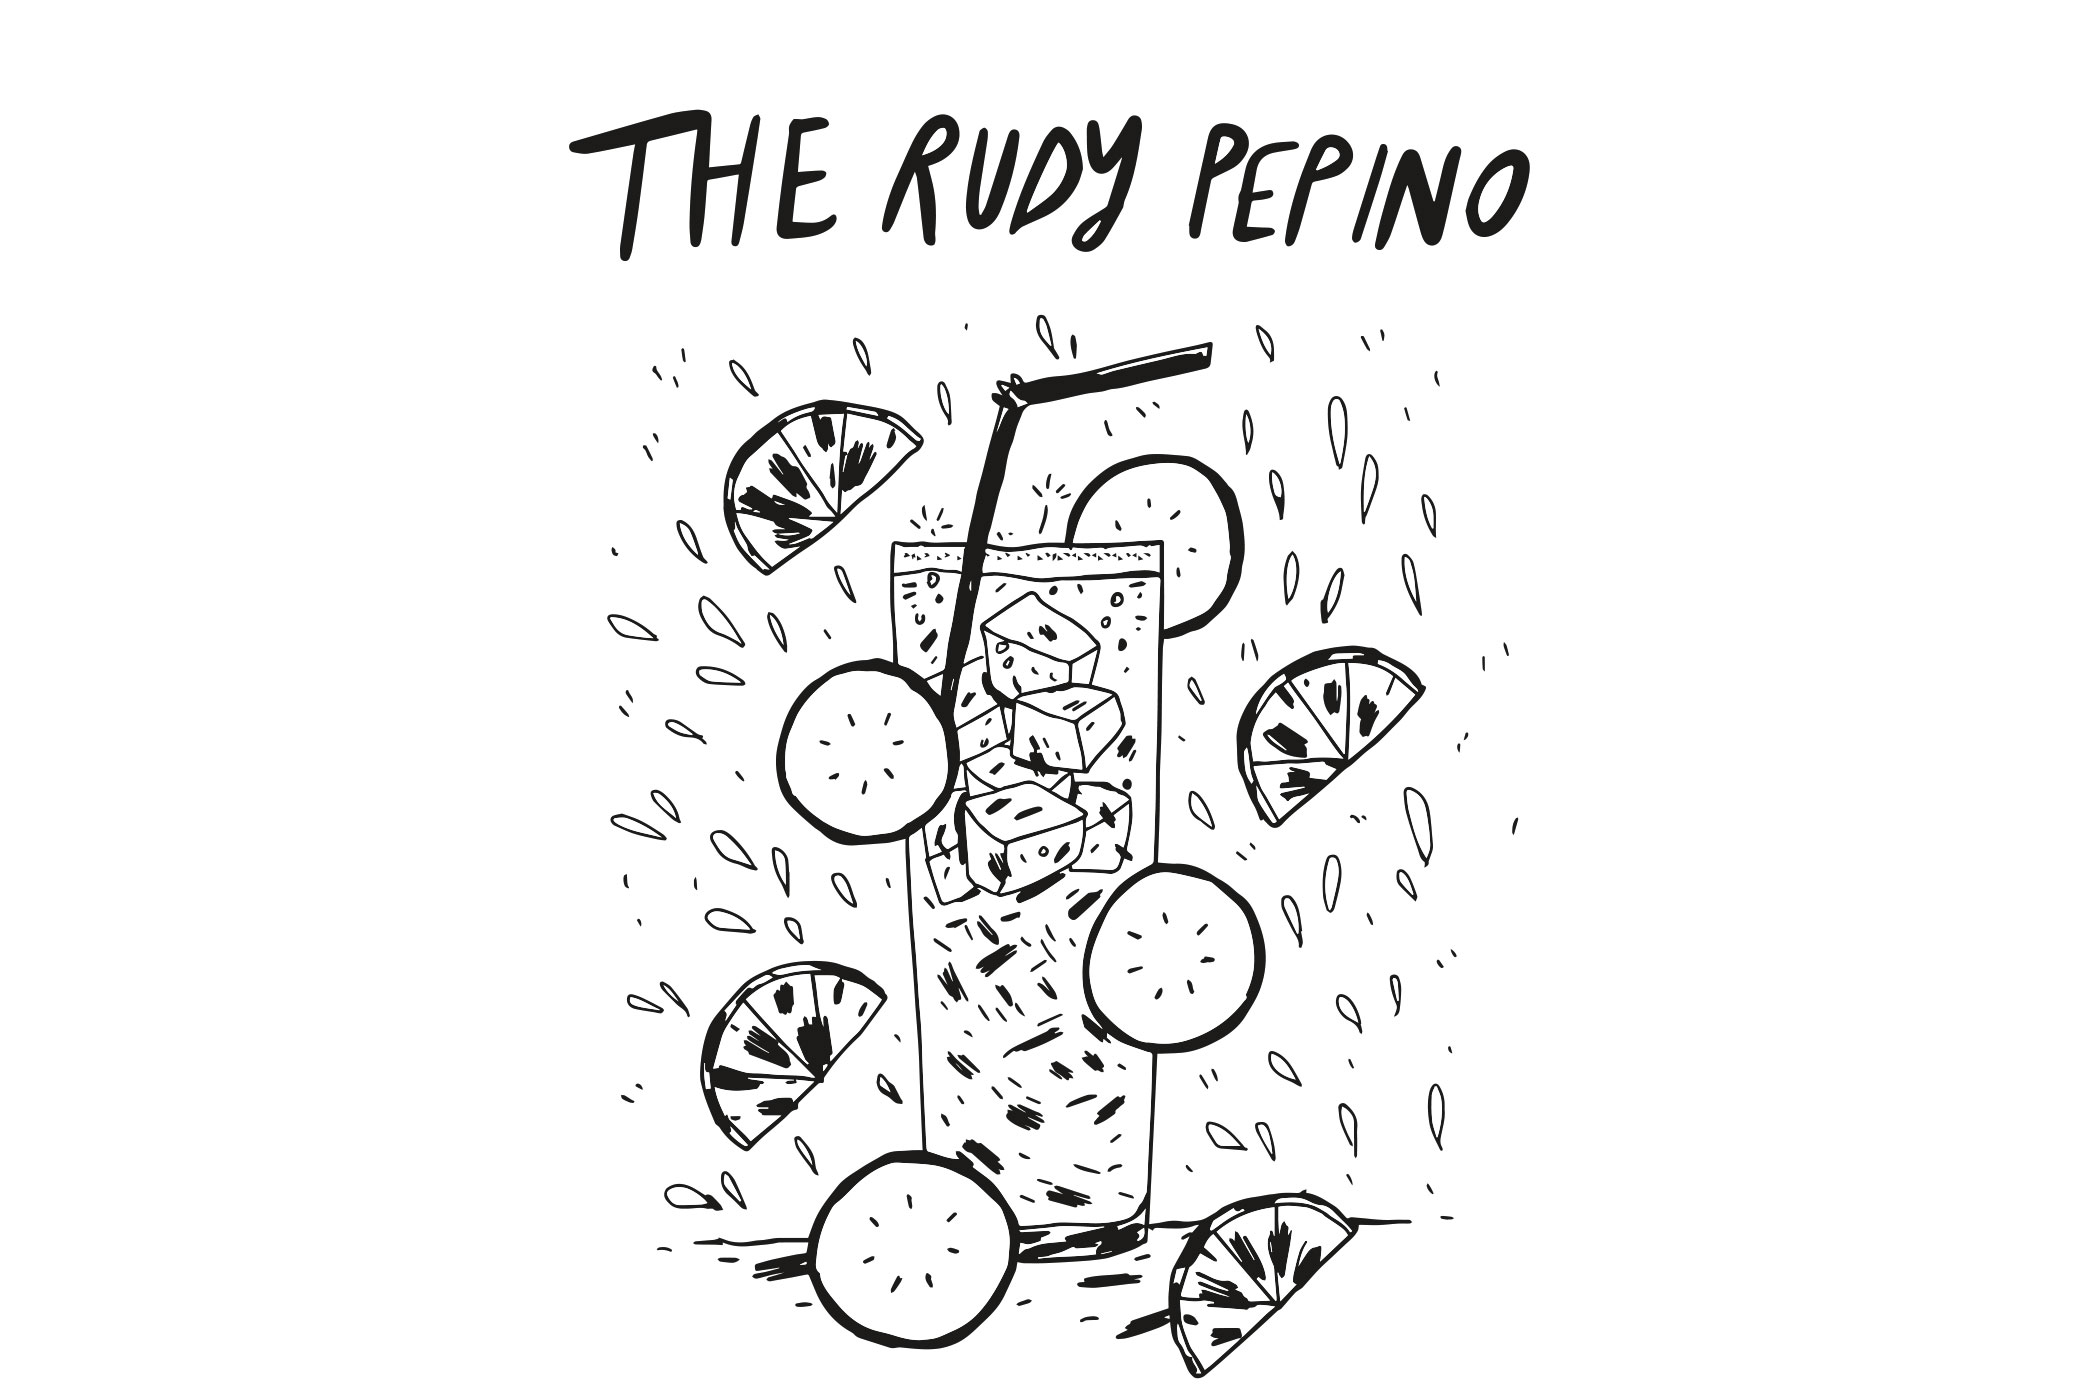 The Rudy Pepino web2